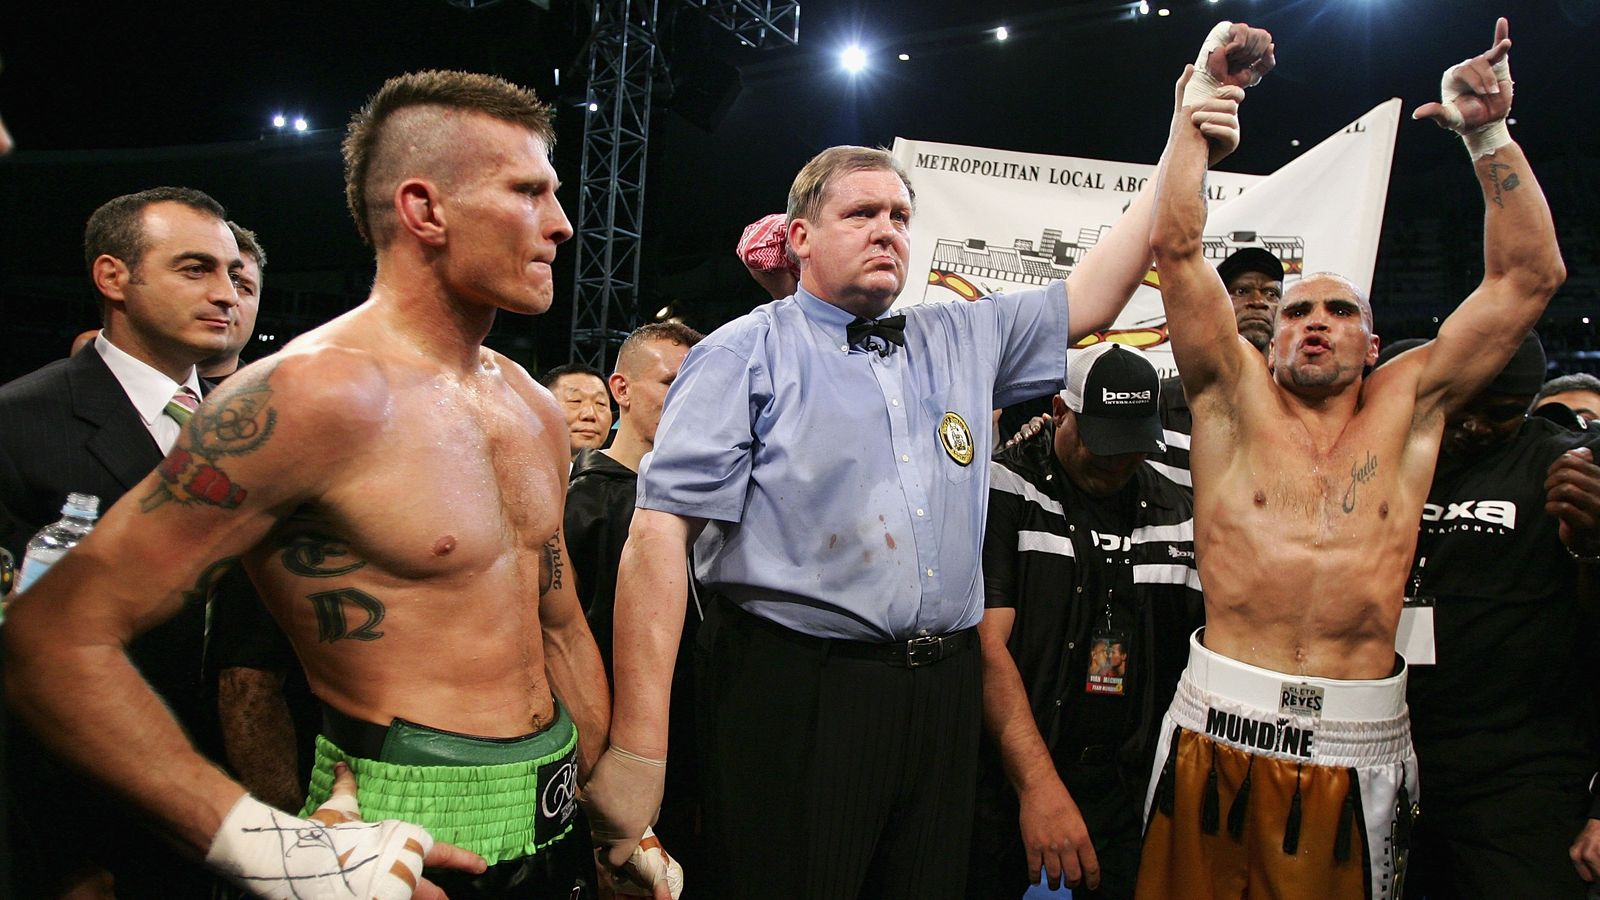 Mundine vs. Green II: The Final Act